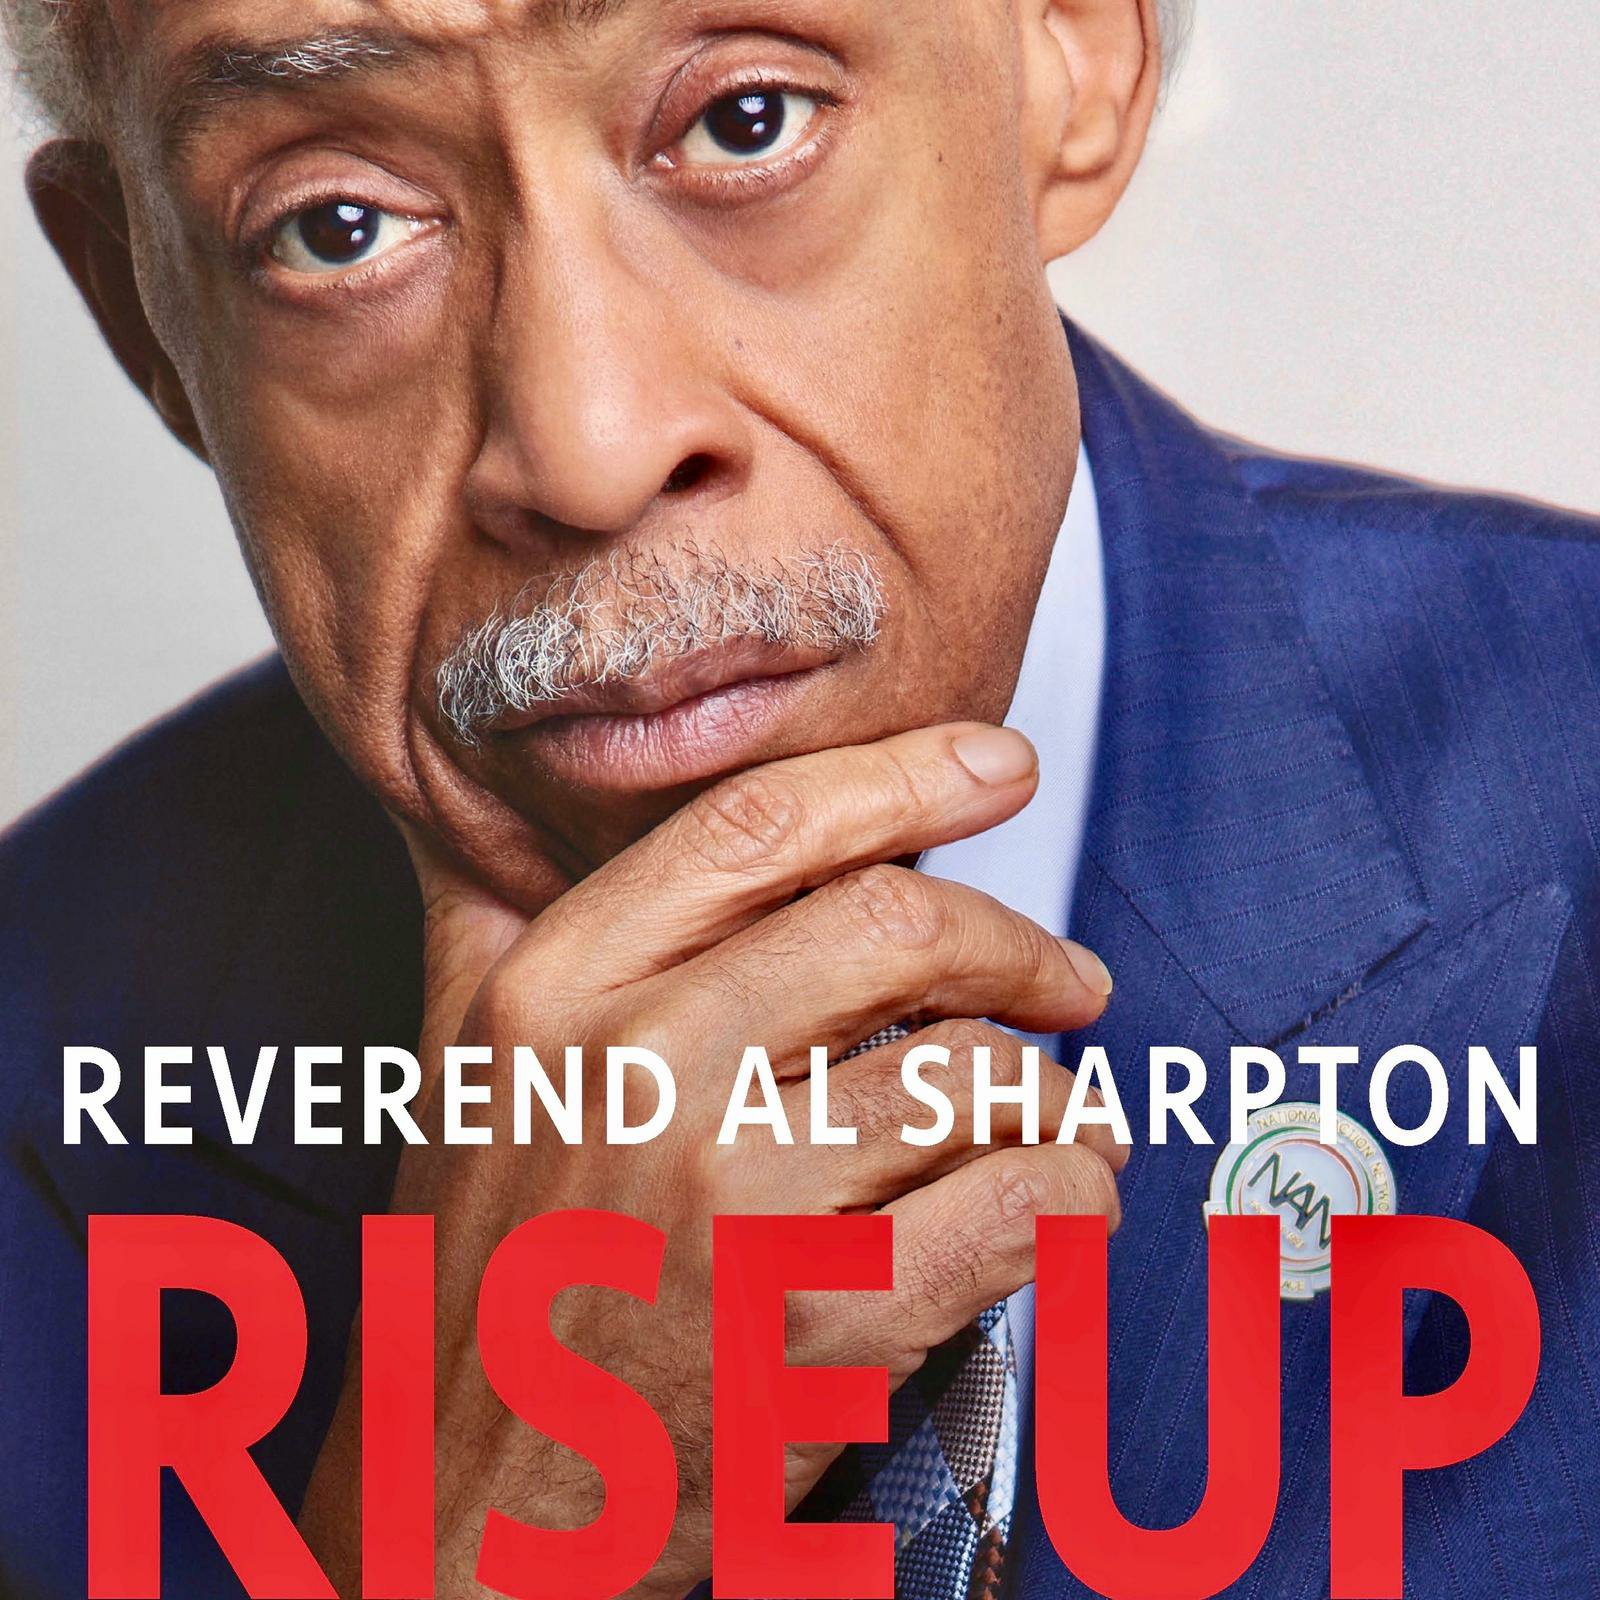 Al Sharpton inside 360 magazine